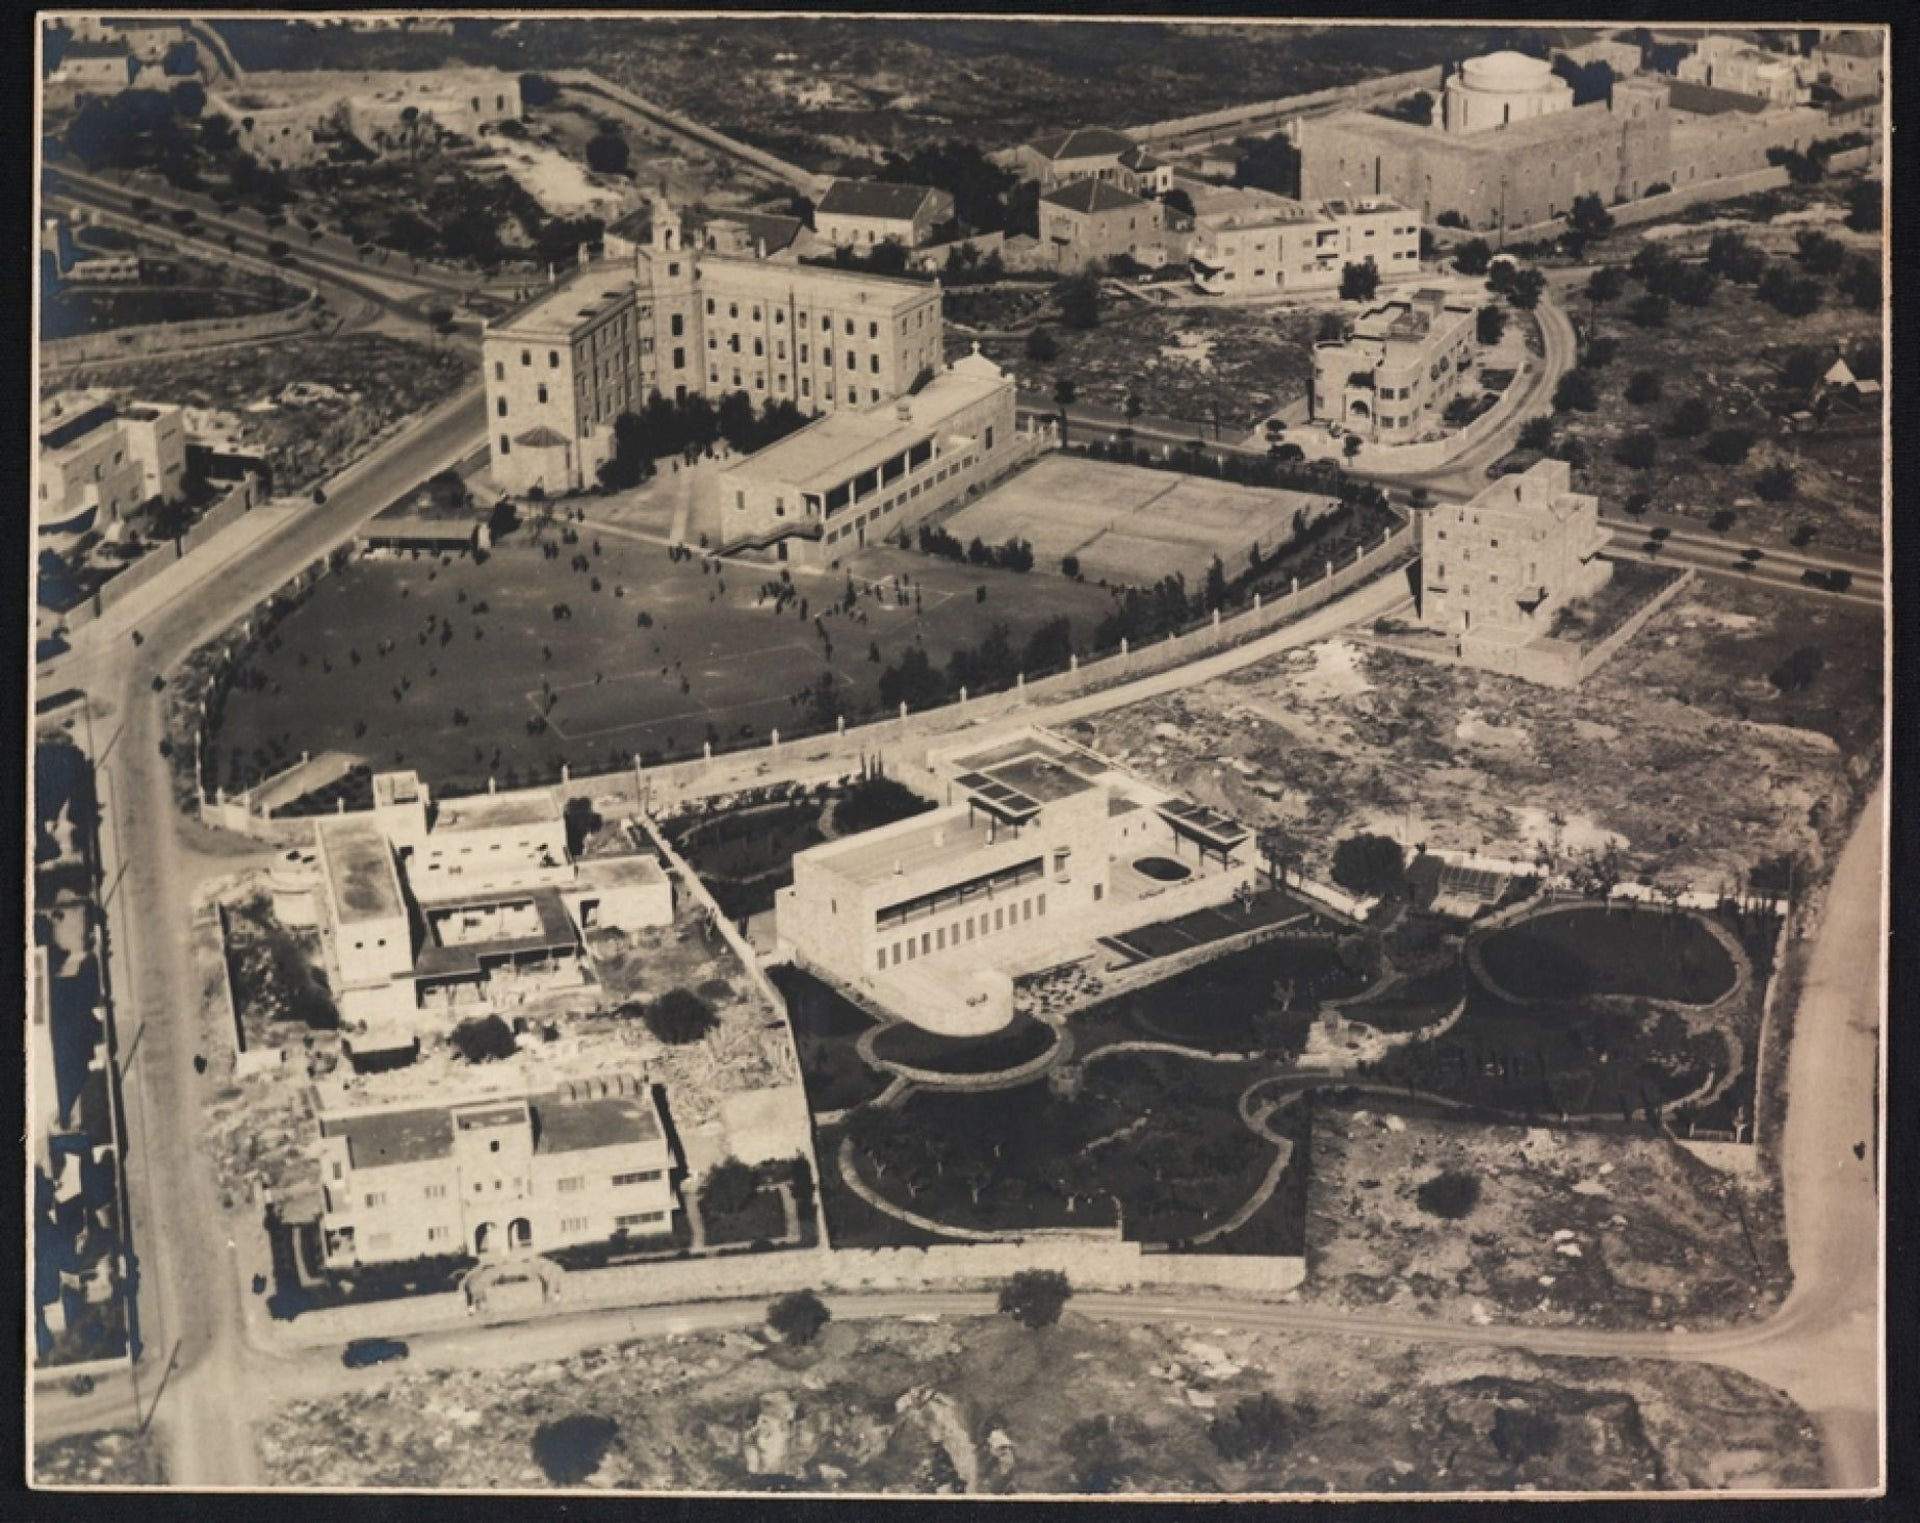 Aerial photo of Jerusalem in 1937. Zalman Schocken's new home and library is on the right-hand side.